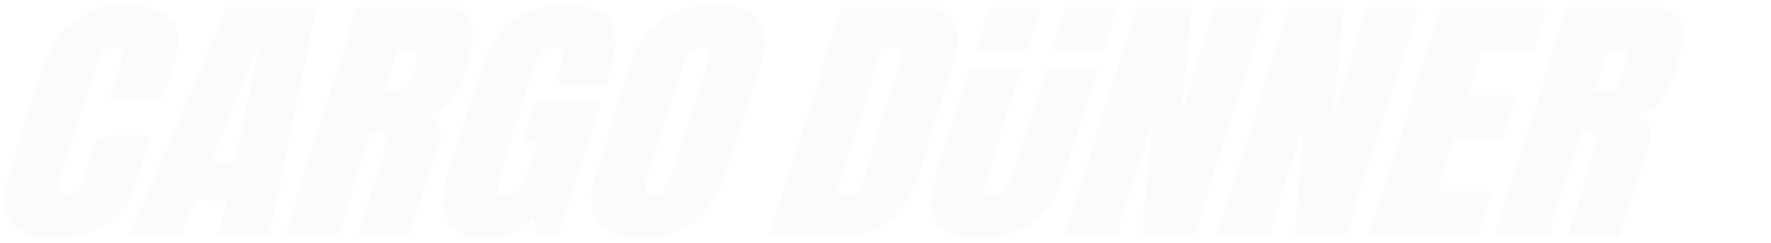 CARGO_DUENNER_LOGO_W_2020.png